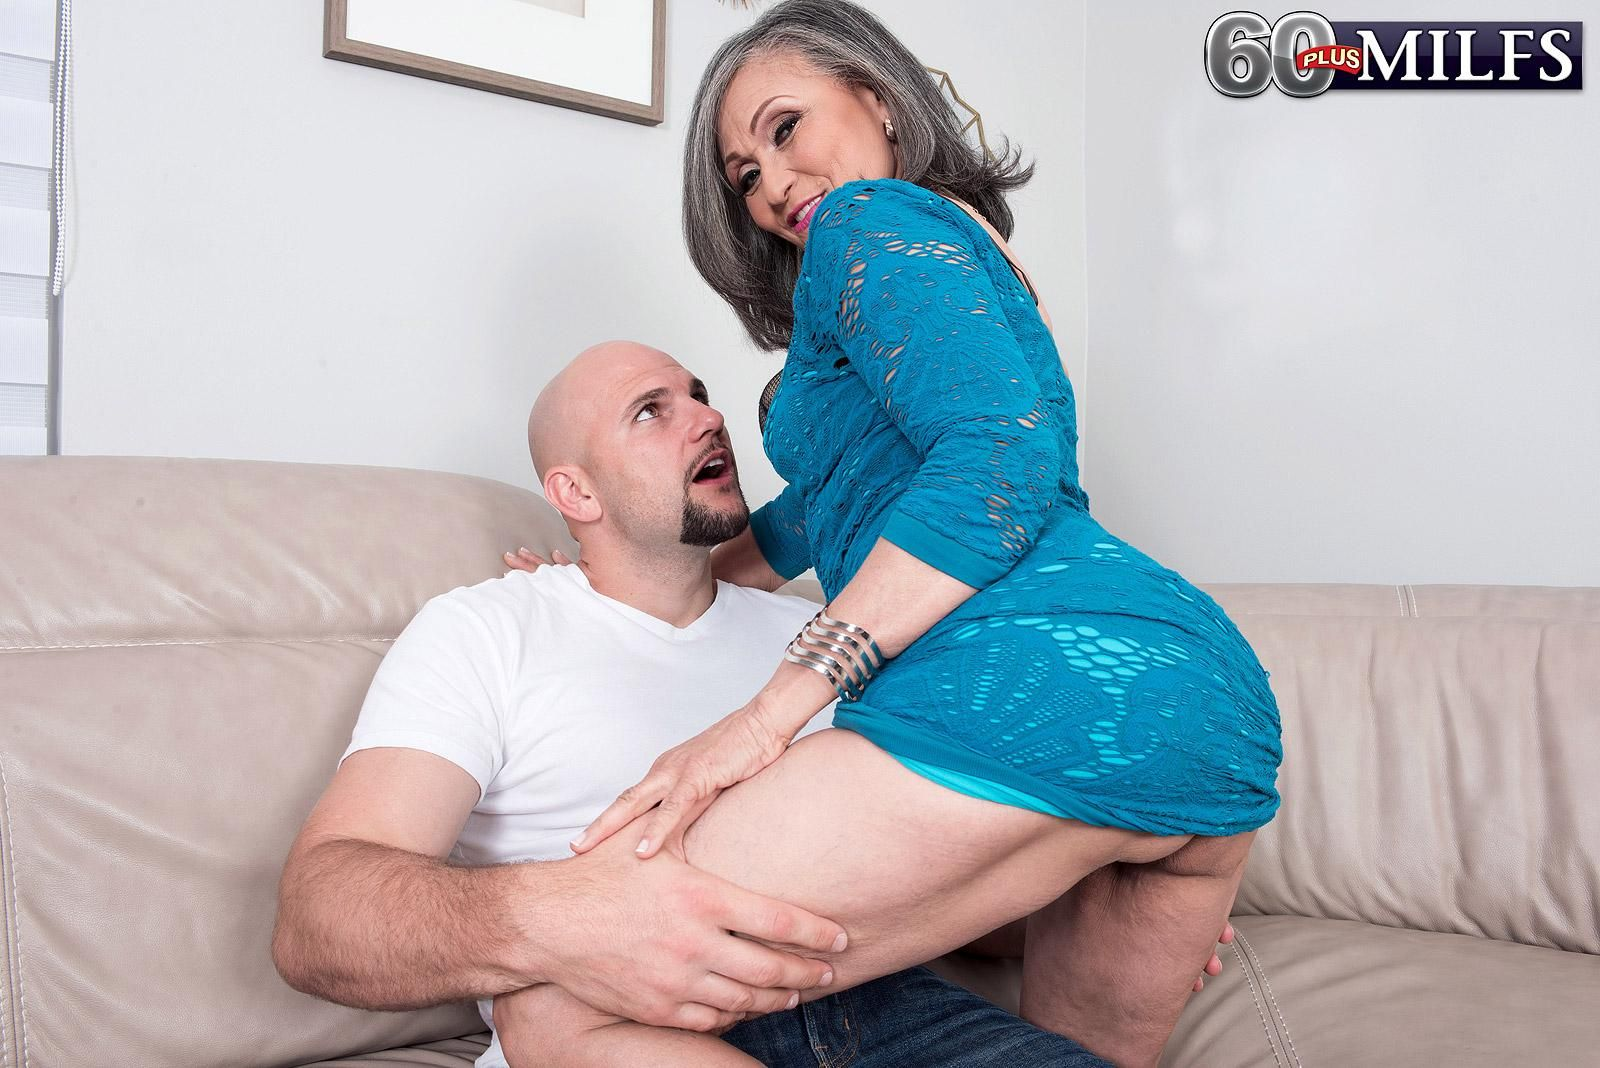 Horny 60+ MILF Kokie Del Coco seduces a younger man in a clingy dress